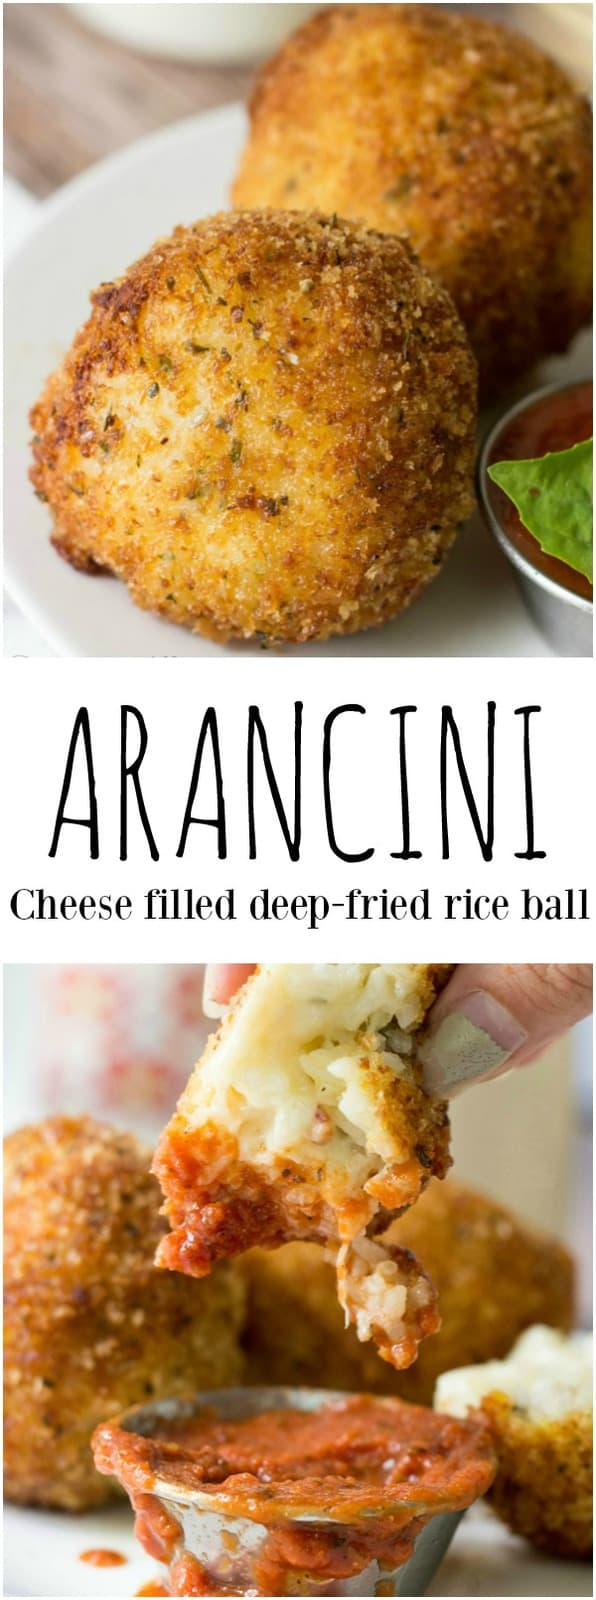 Want a delicious and filling appetizer that can be made into a meal? This Arancini recipe is an Italian classic made of deep fried rice and cheese, a dish that you cannot resist! #rice #cheese #italian #deepfried #appetizers